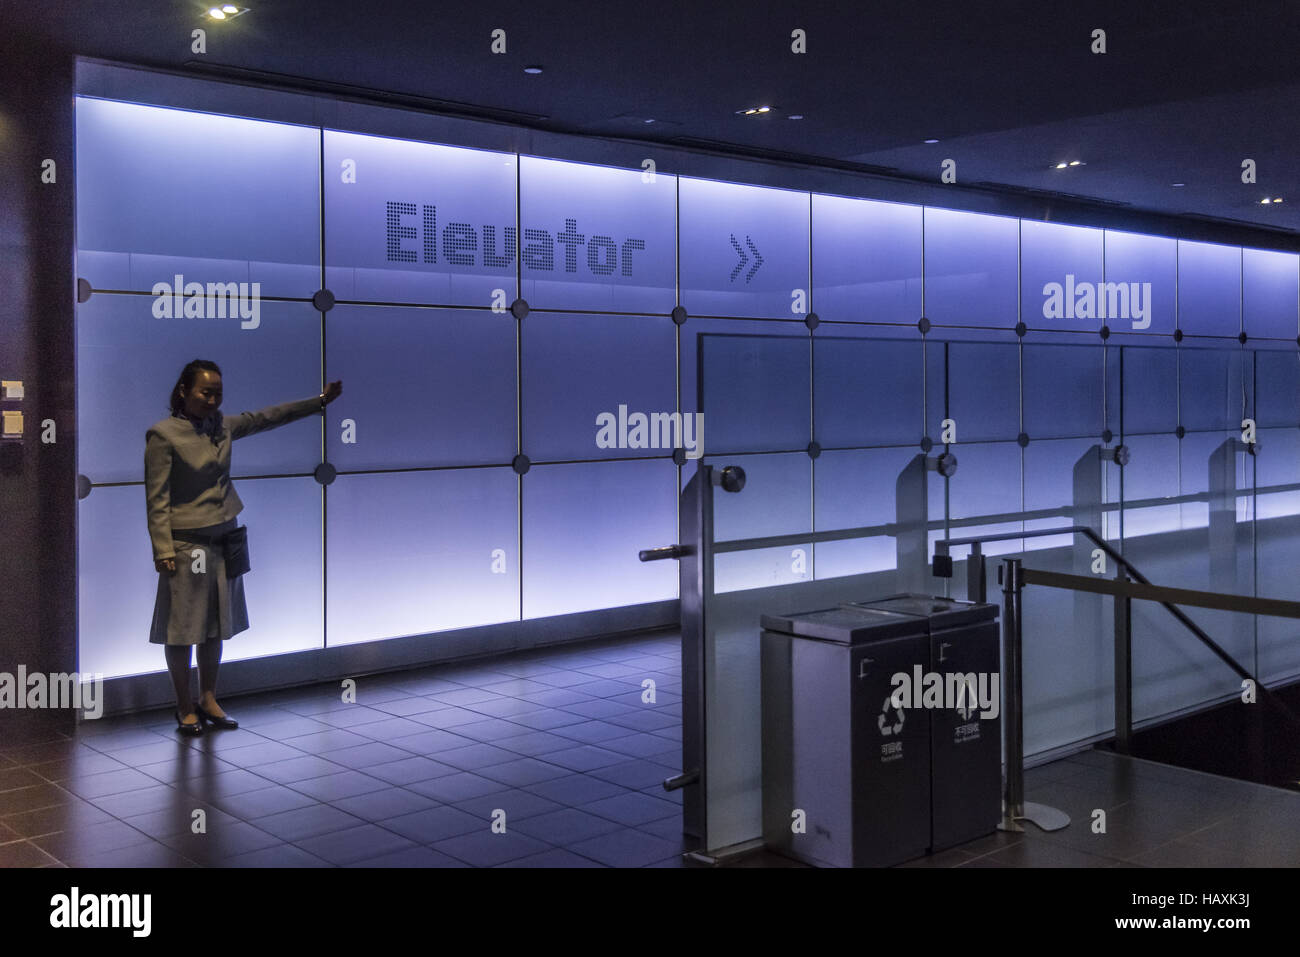 Elevator in Shanghai World Financial Center Stock Photo